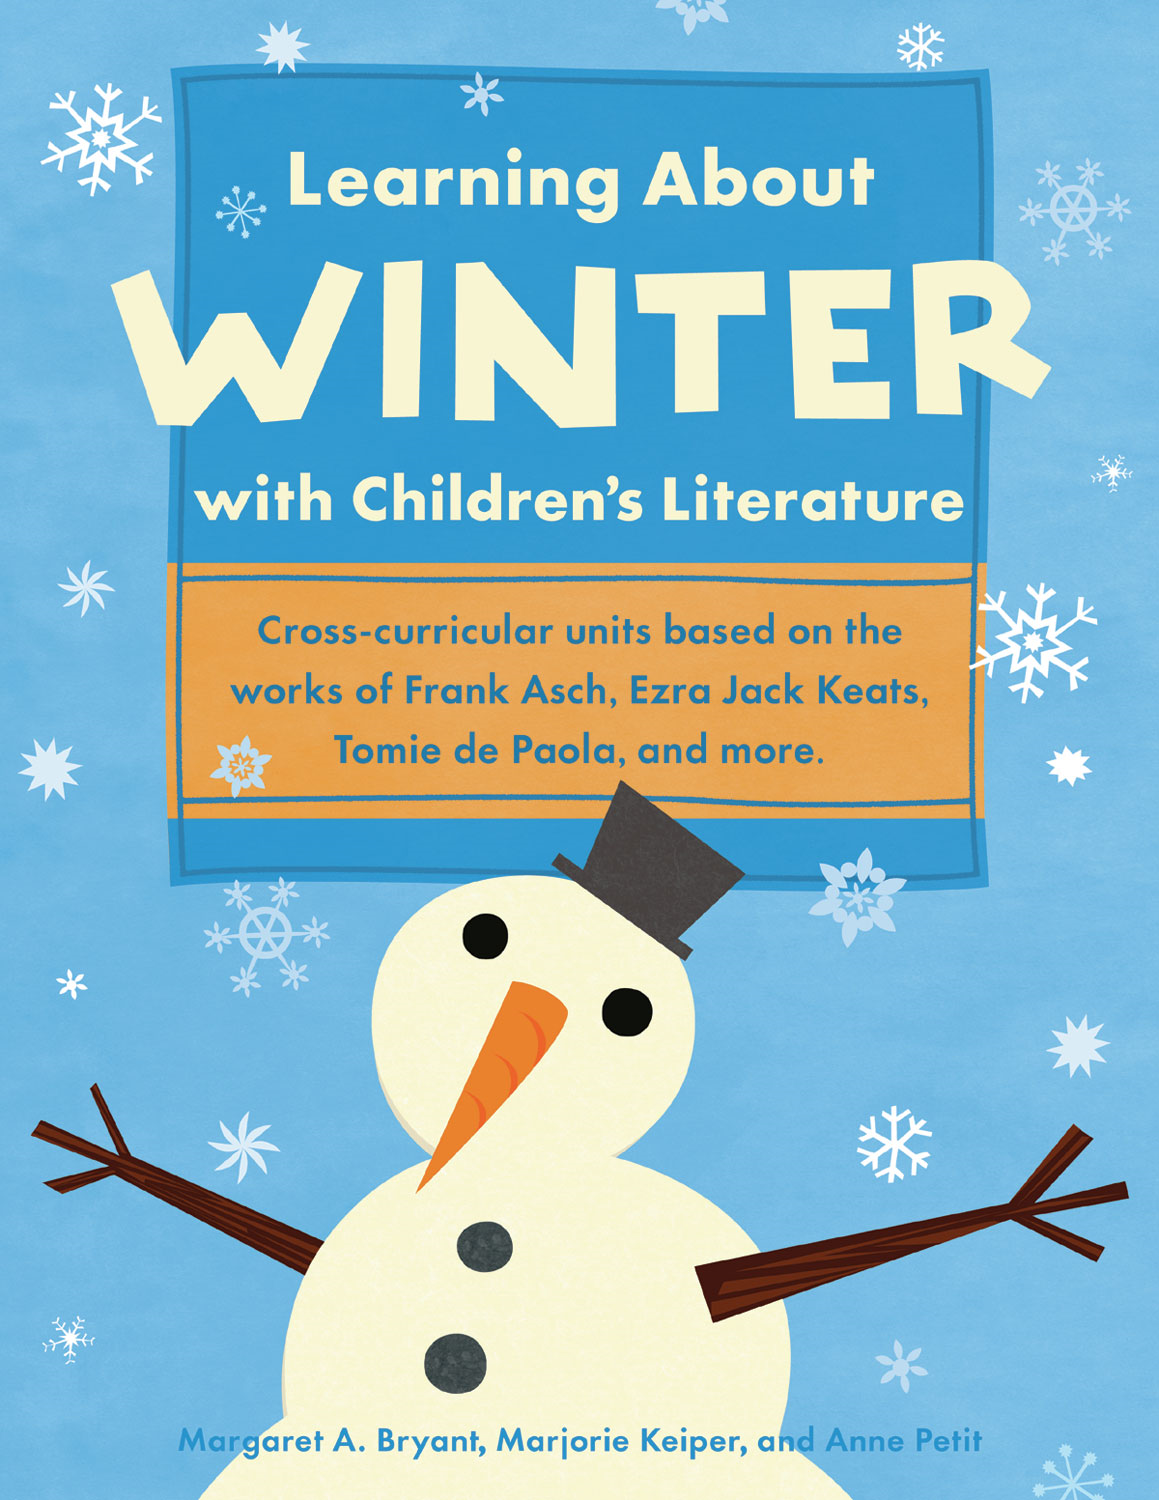 Learning About Winter with Children's Literature